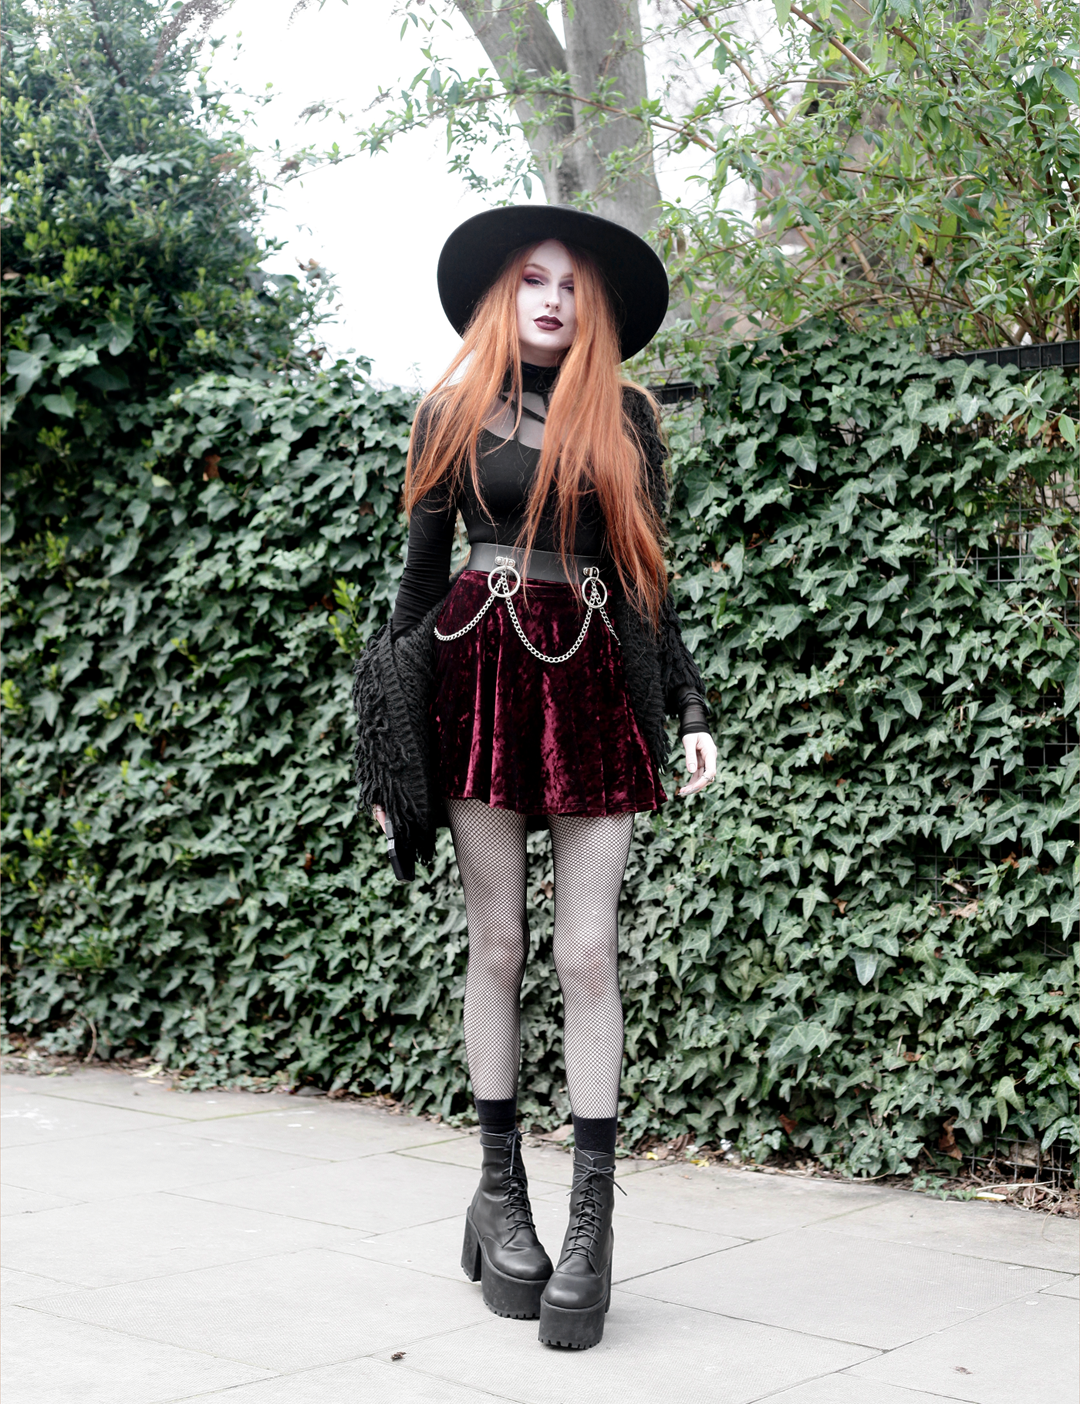 Olivia Emily wears Rogue and Wolf Moondoll Top, Killstar Fedora Hat, Crushed Velvet skirt, Mary Wyatt Chain Belt and Unif Scosche Boots